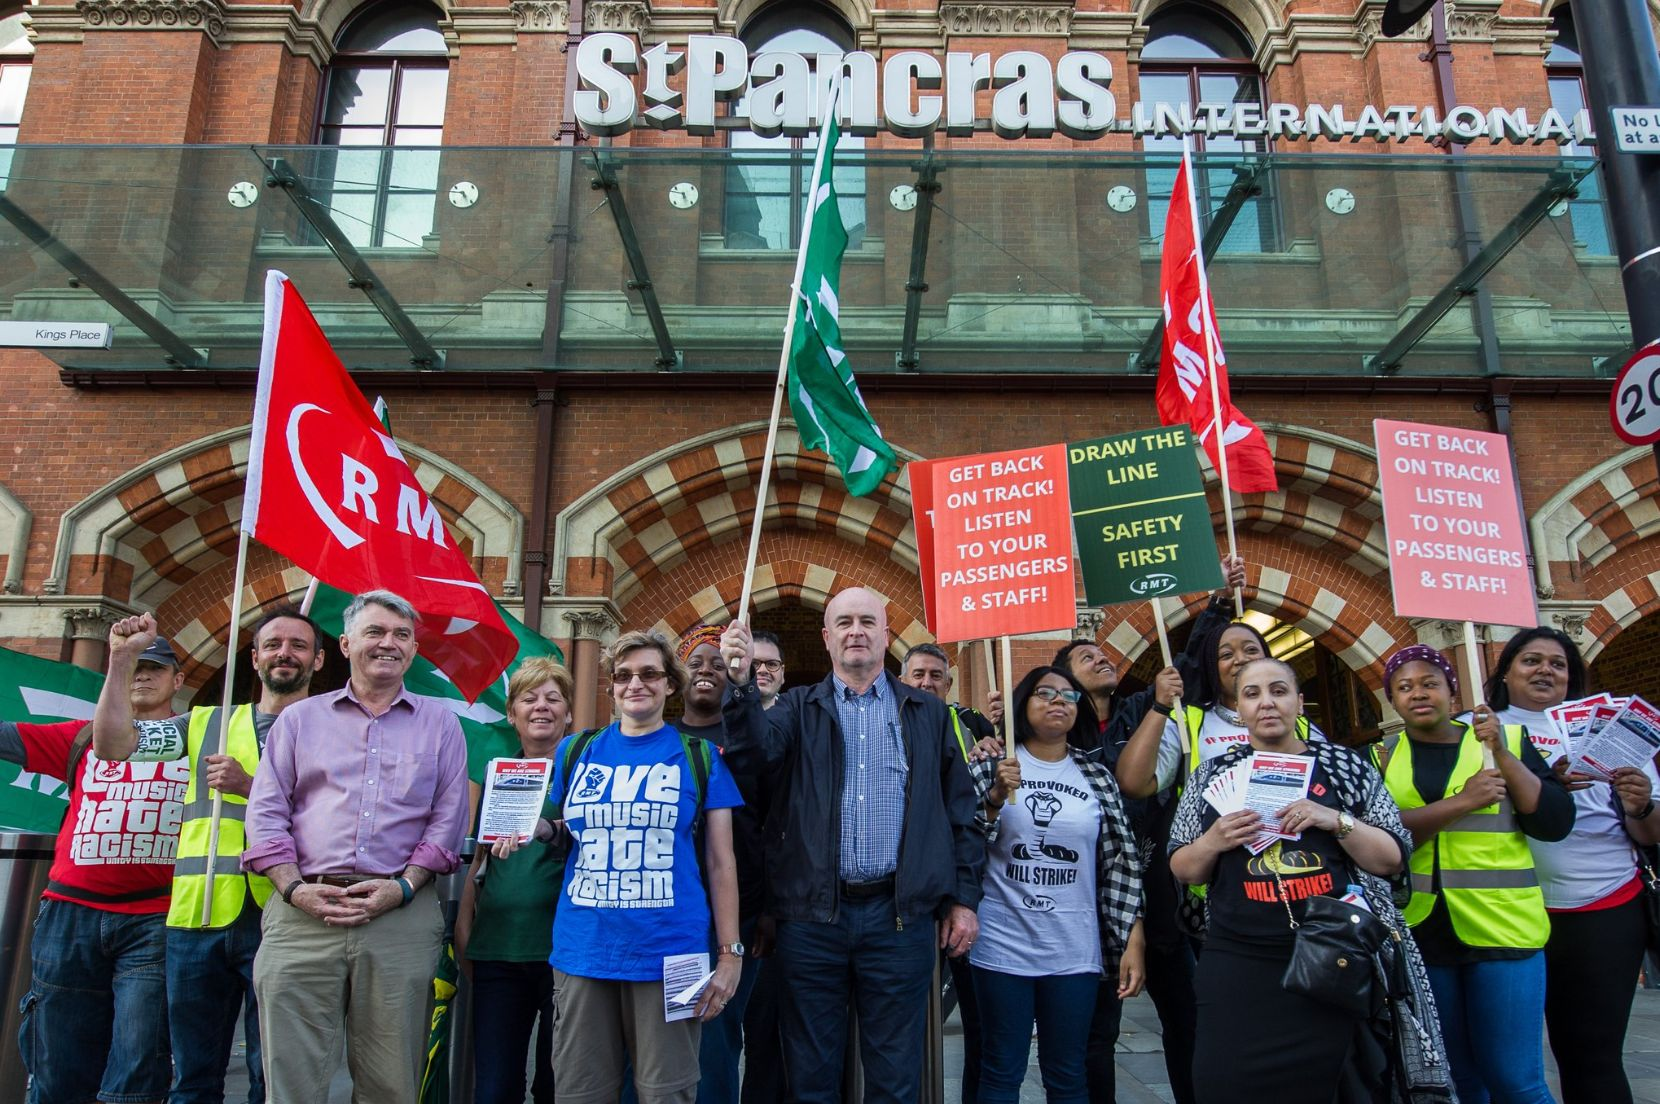 South Western Railway And Eurostar Rail Workers Stage 24-Hour Strike Amid Travel